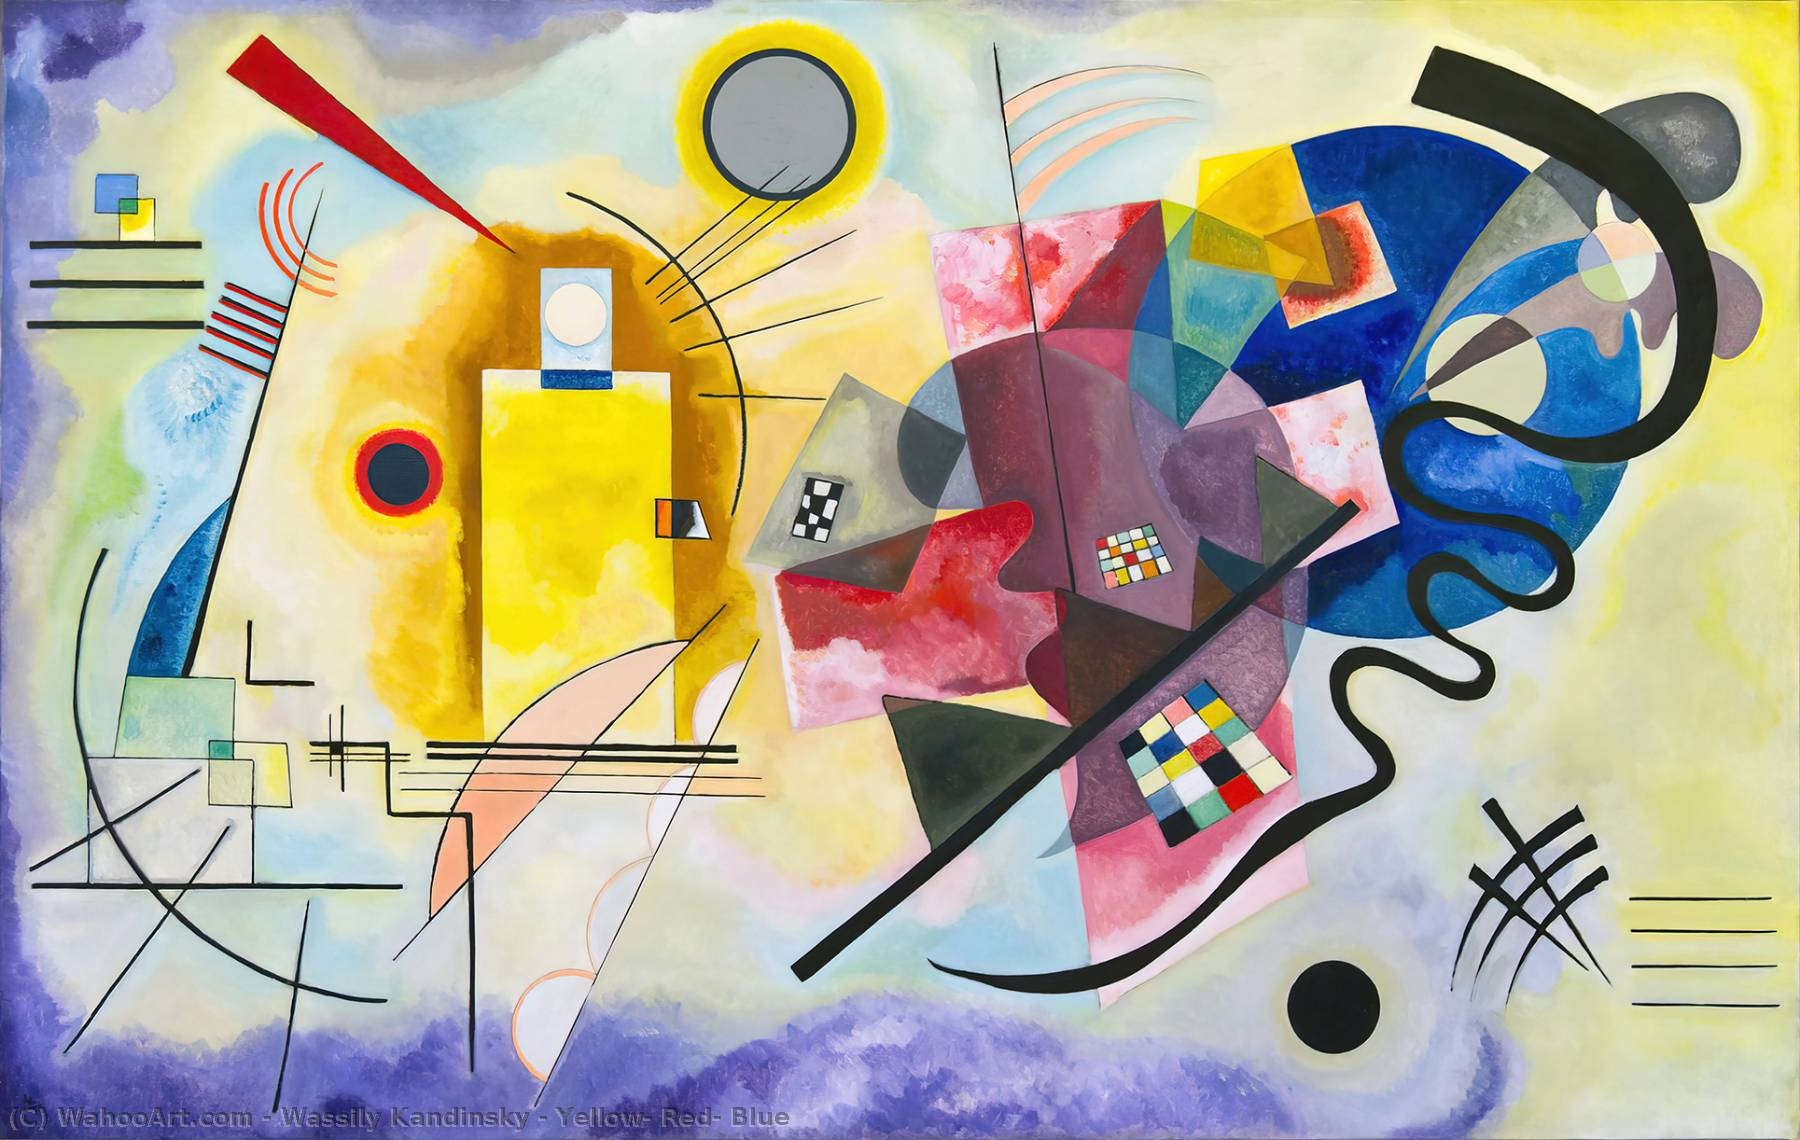 Order Museum Quality Copies | Yellow, Red, Blue by Wassily Kandinsky | Most-Famous-Paintings.com